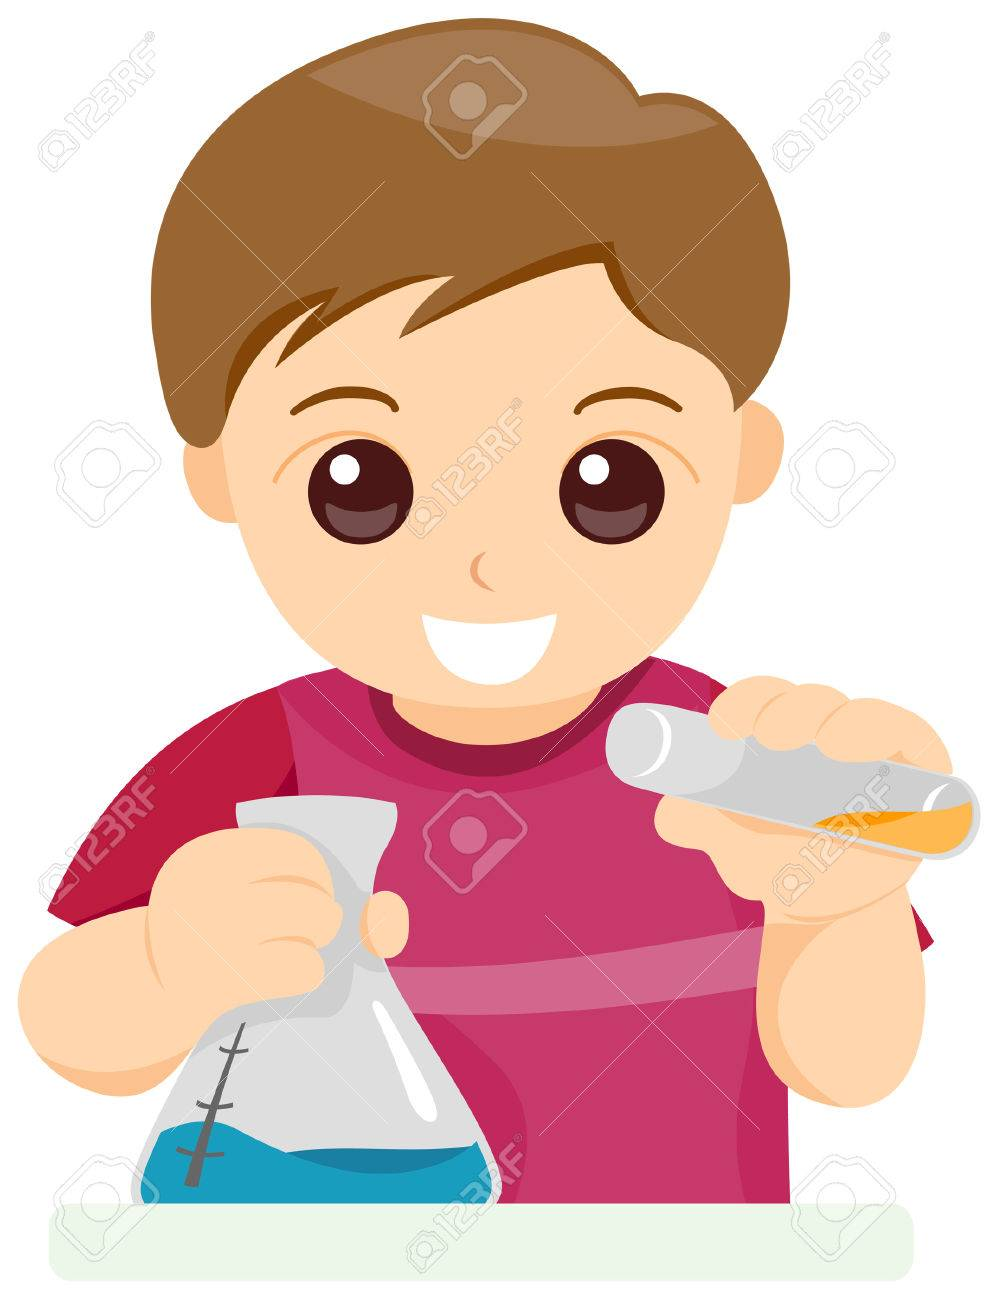 Child Experimenting with Clipping Path Stock Vector - 3464266